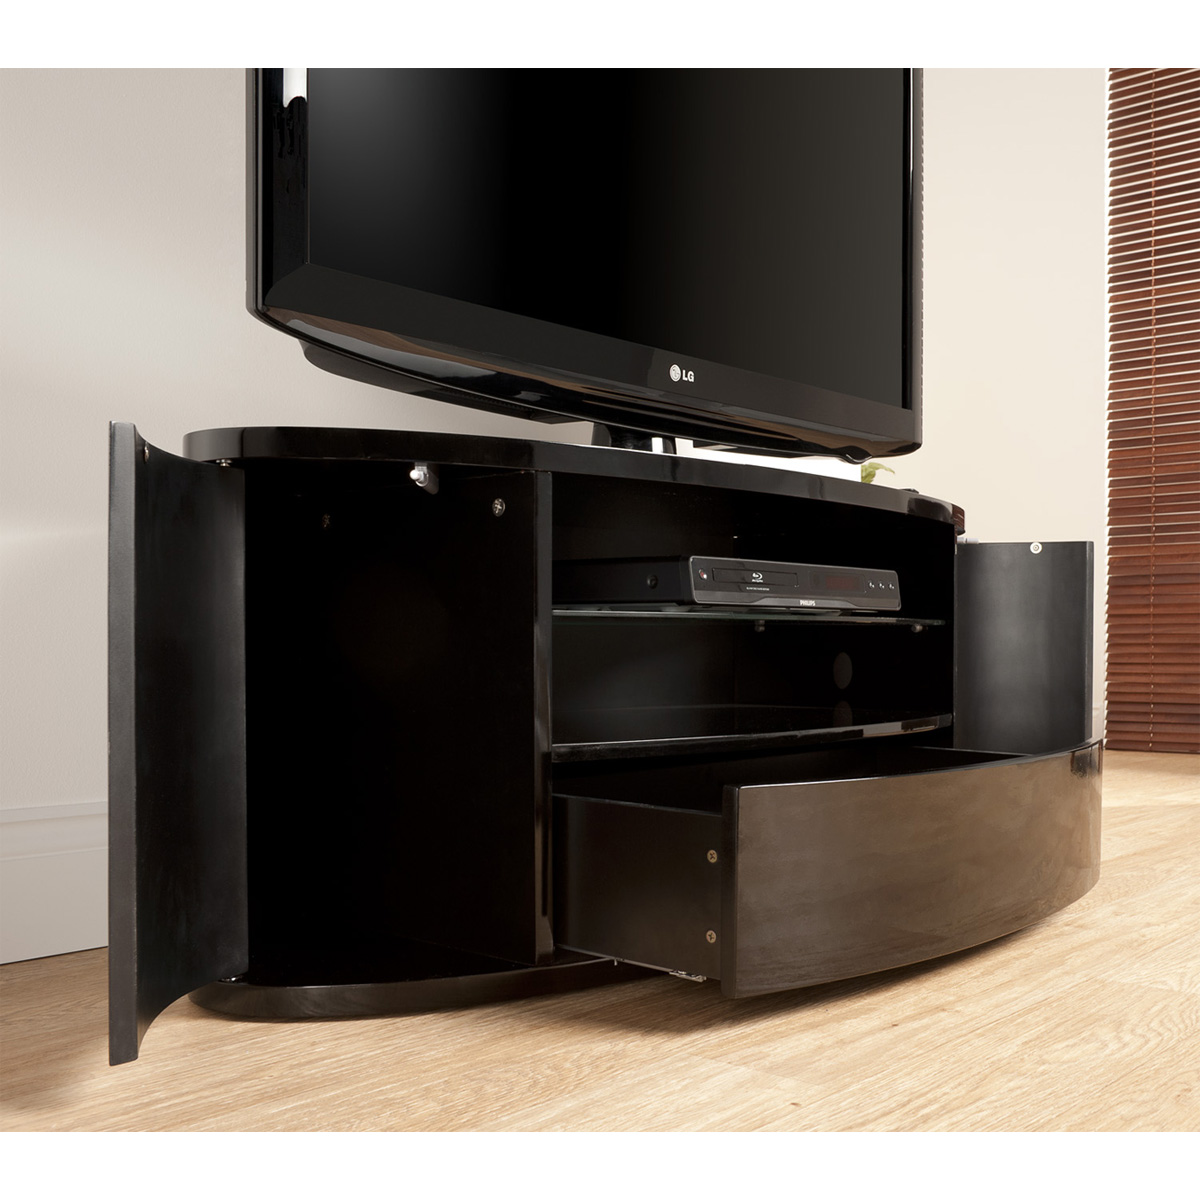 curved design black lcd plasma tv stand 40 50 inch screen ebay. Black Bedroom Furniture Sets. Home Design Ideas